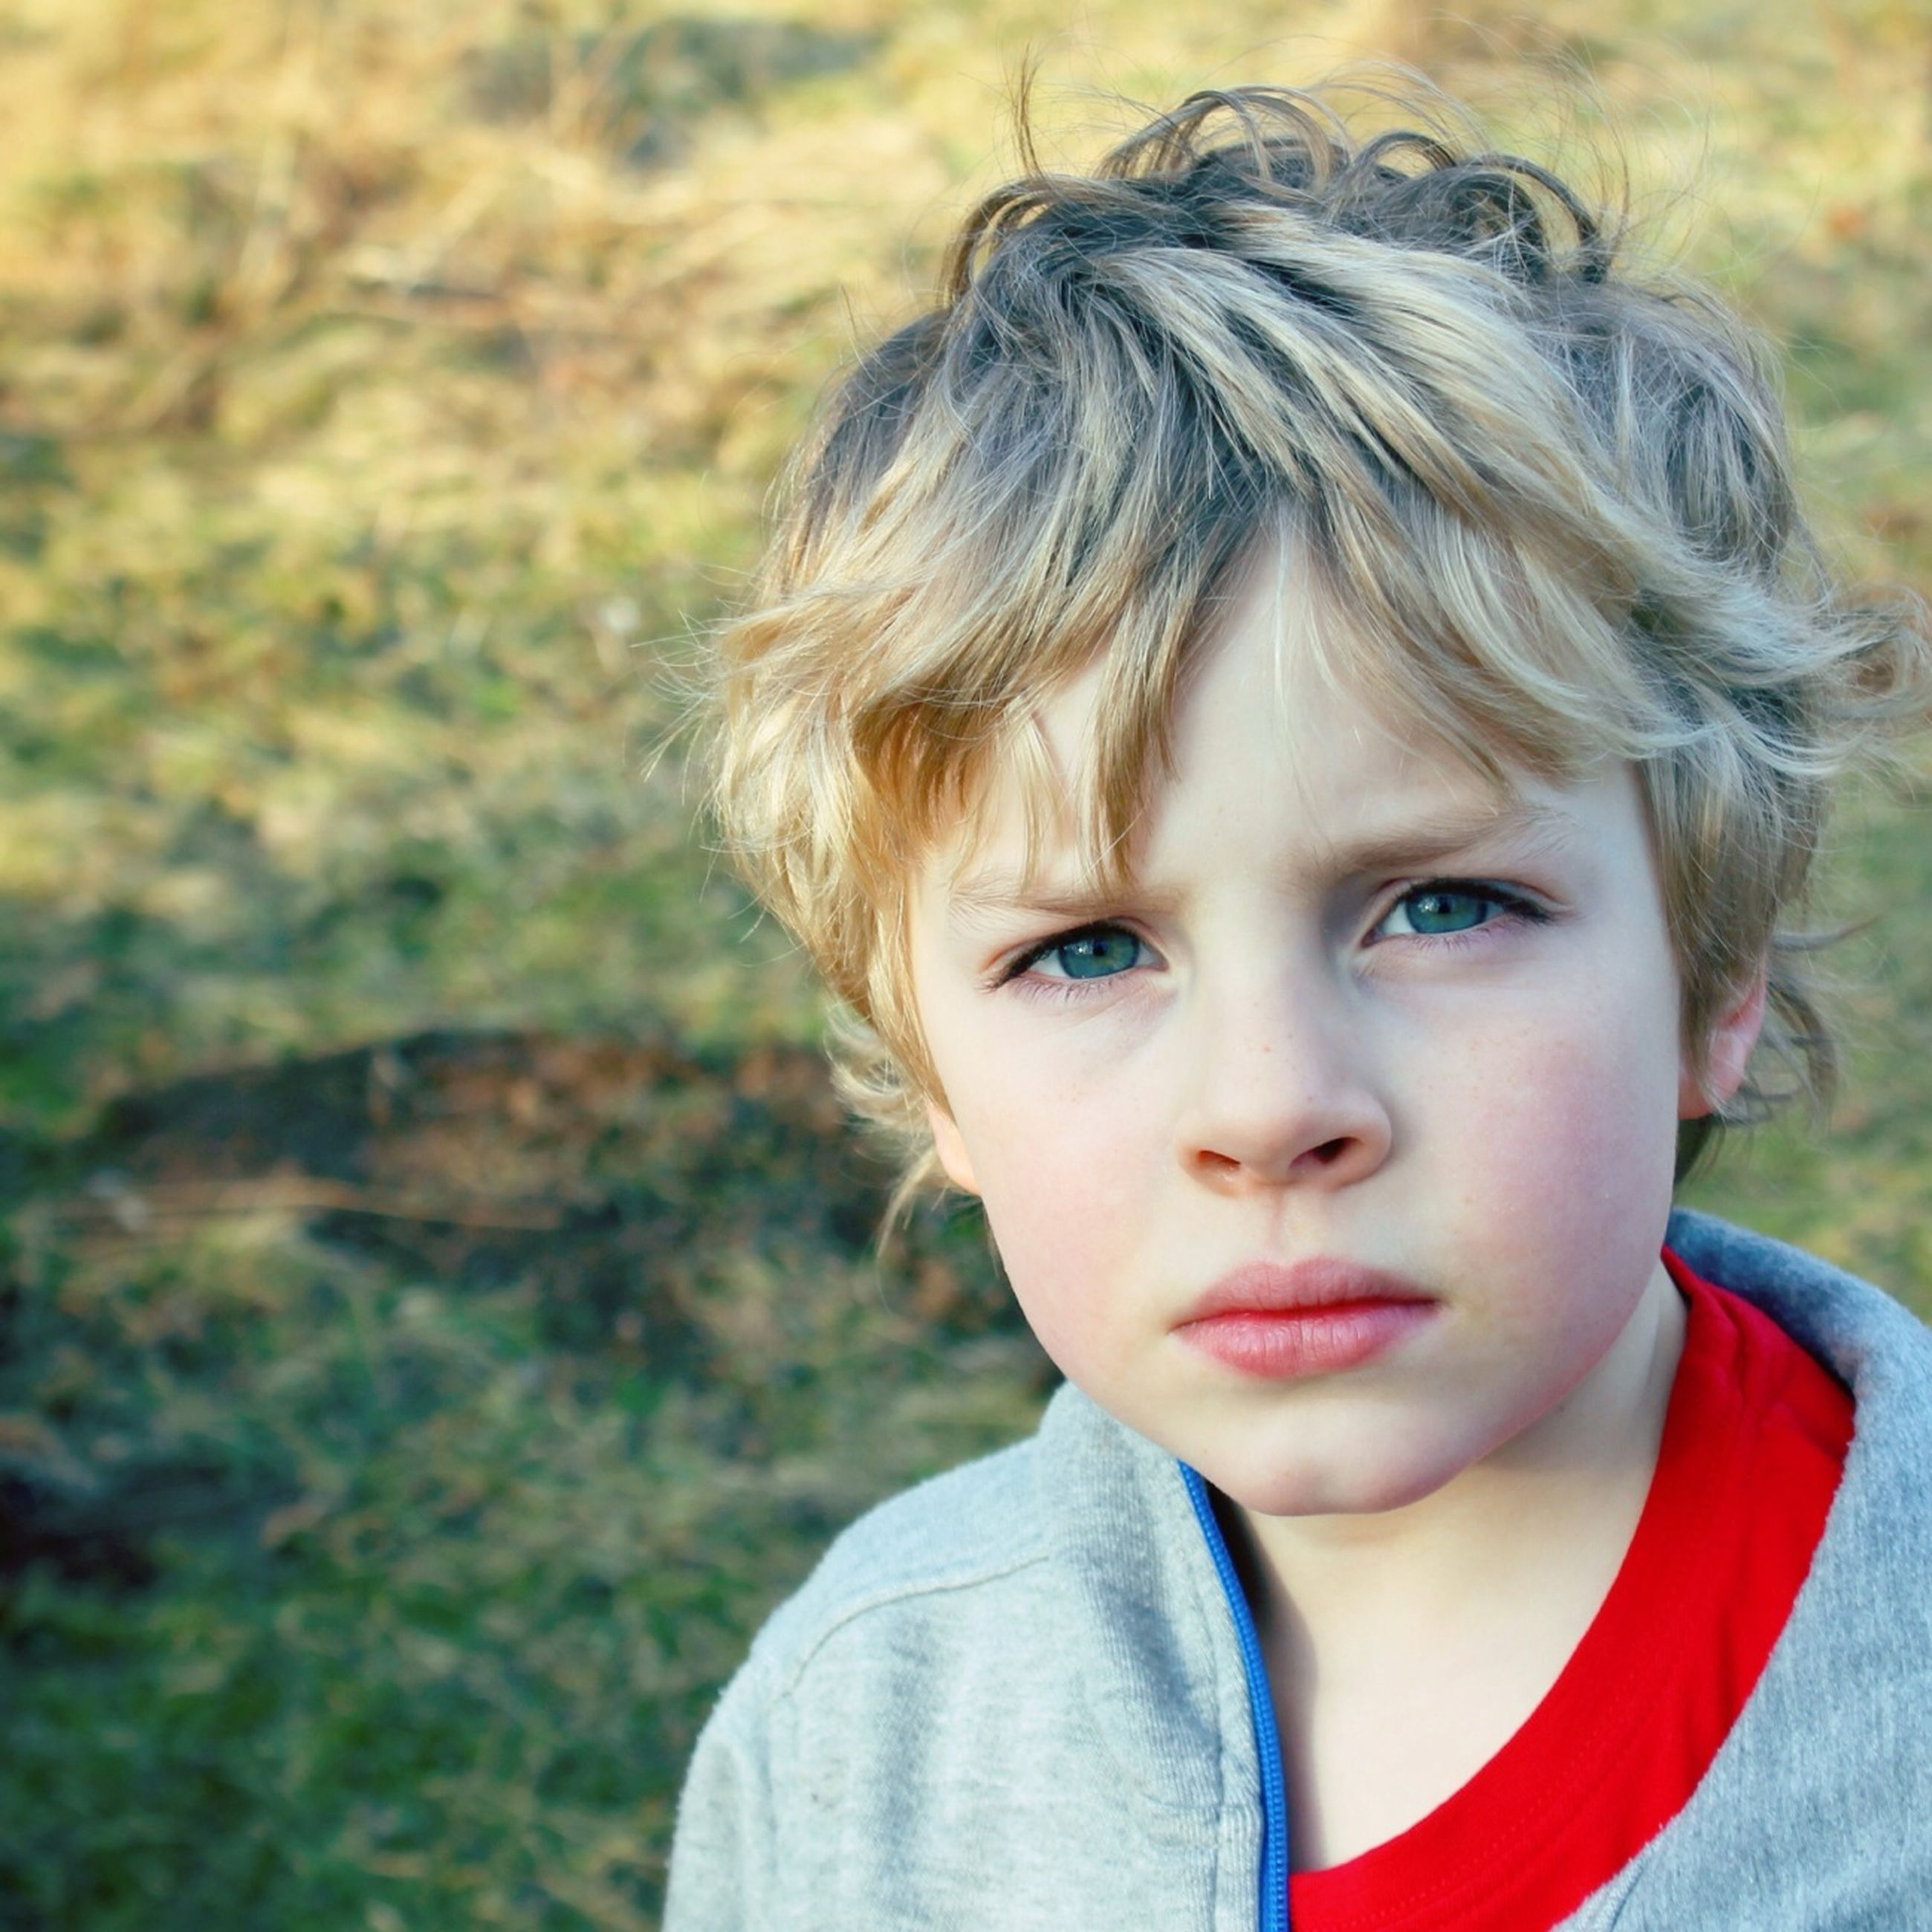 person, headshot, focus on foreground, portrait, childhood, elementary age, looking at camera, lifestyles, leisure activity, close-up, front view, casual clothing, smiling, innocence, cute, boys, girls, head and shoulders